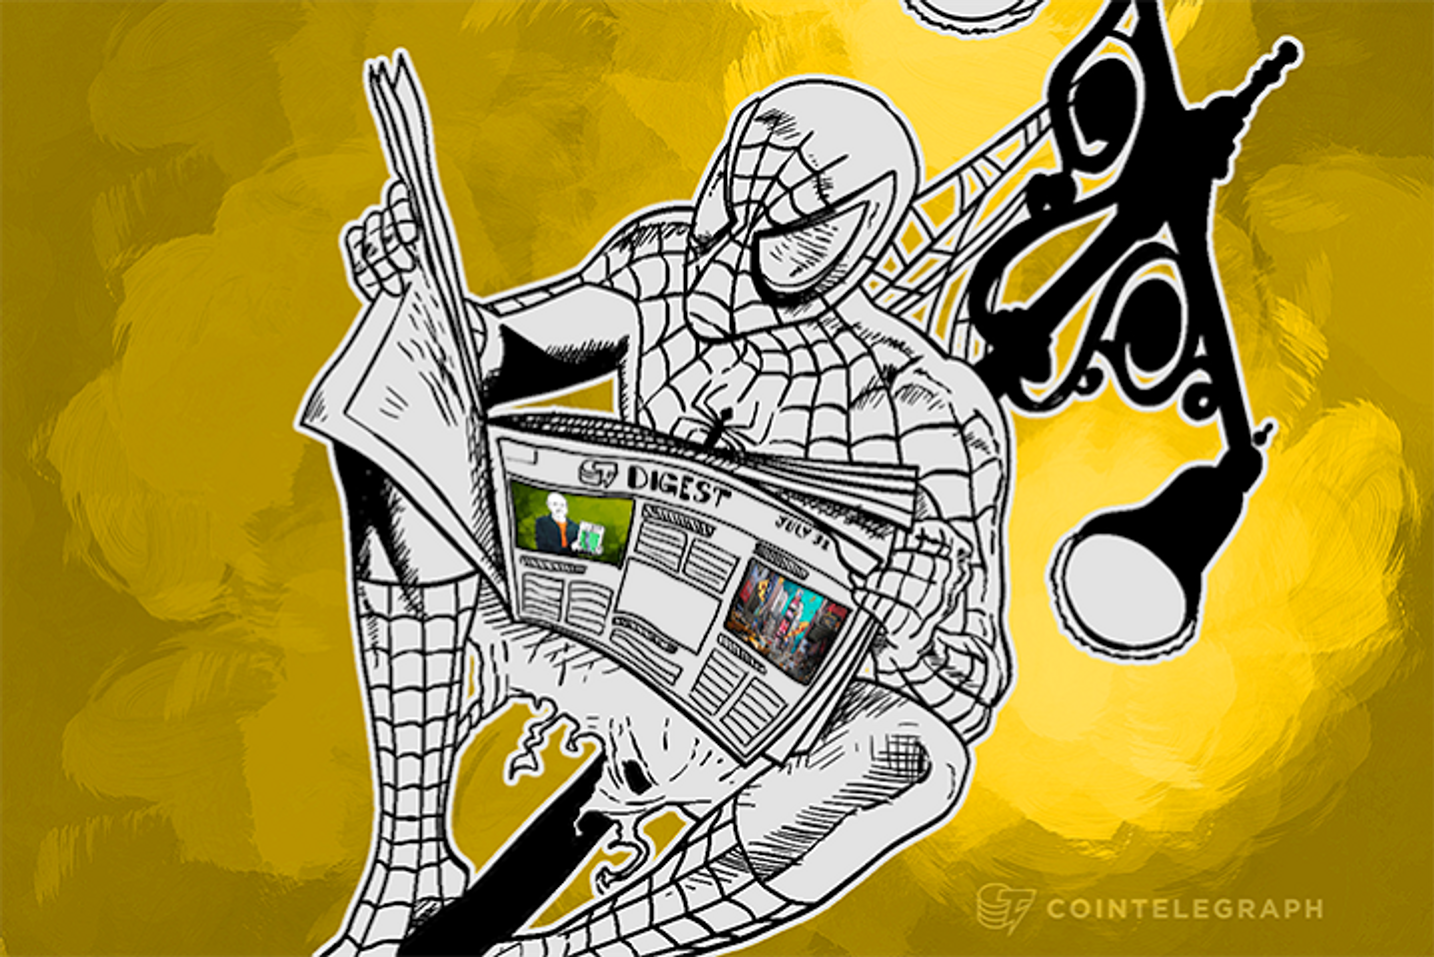 JUL 31 DIGEST: Former Mt Gox CEO Faces Fraud Charges; Ethereum Finally Launches